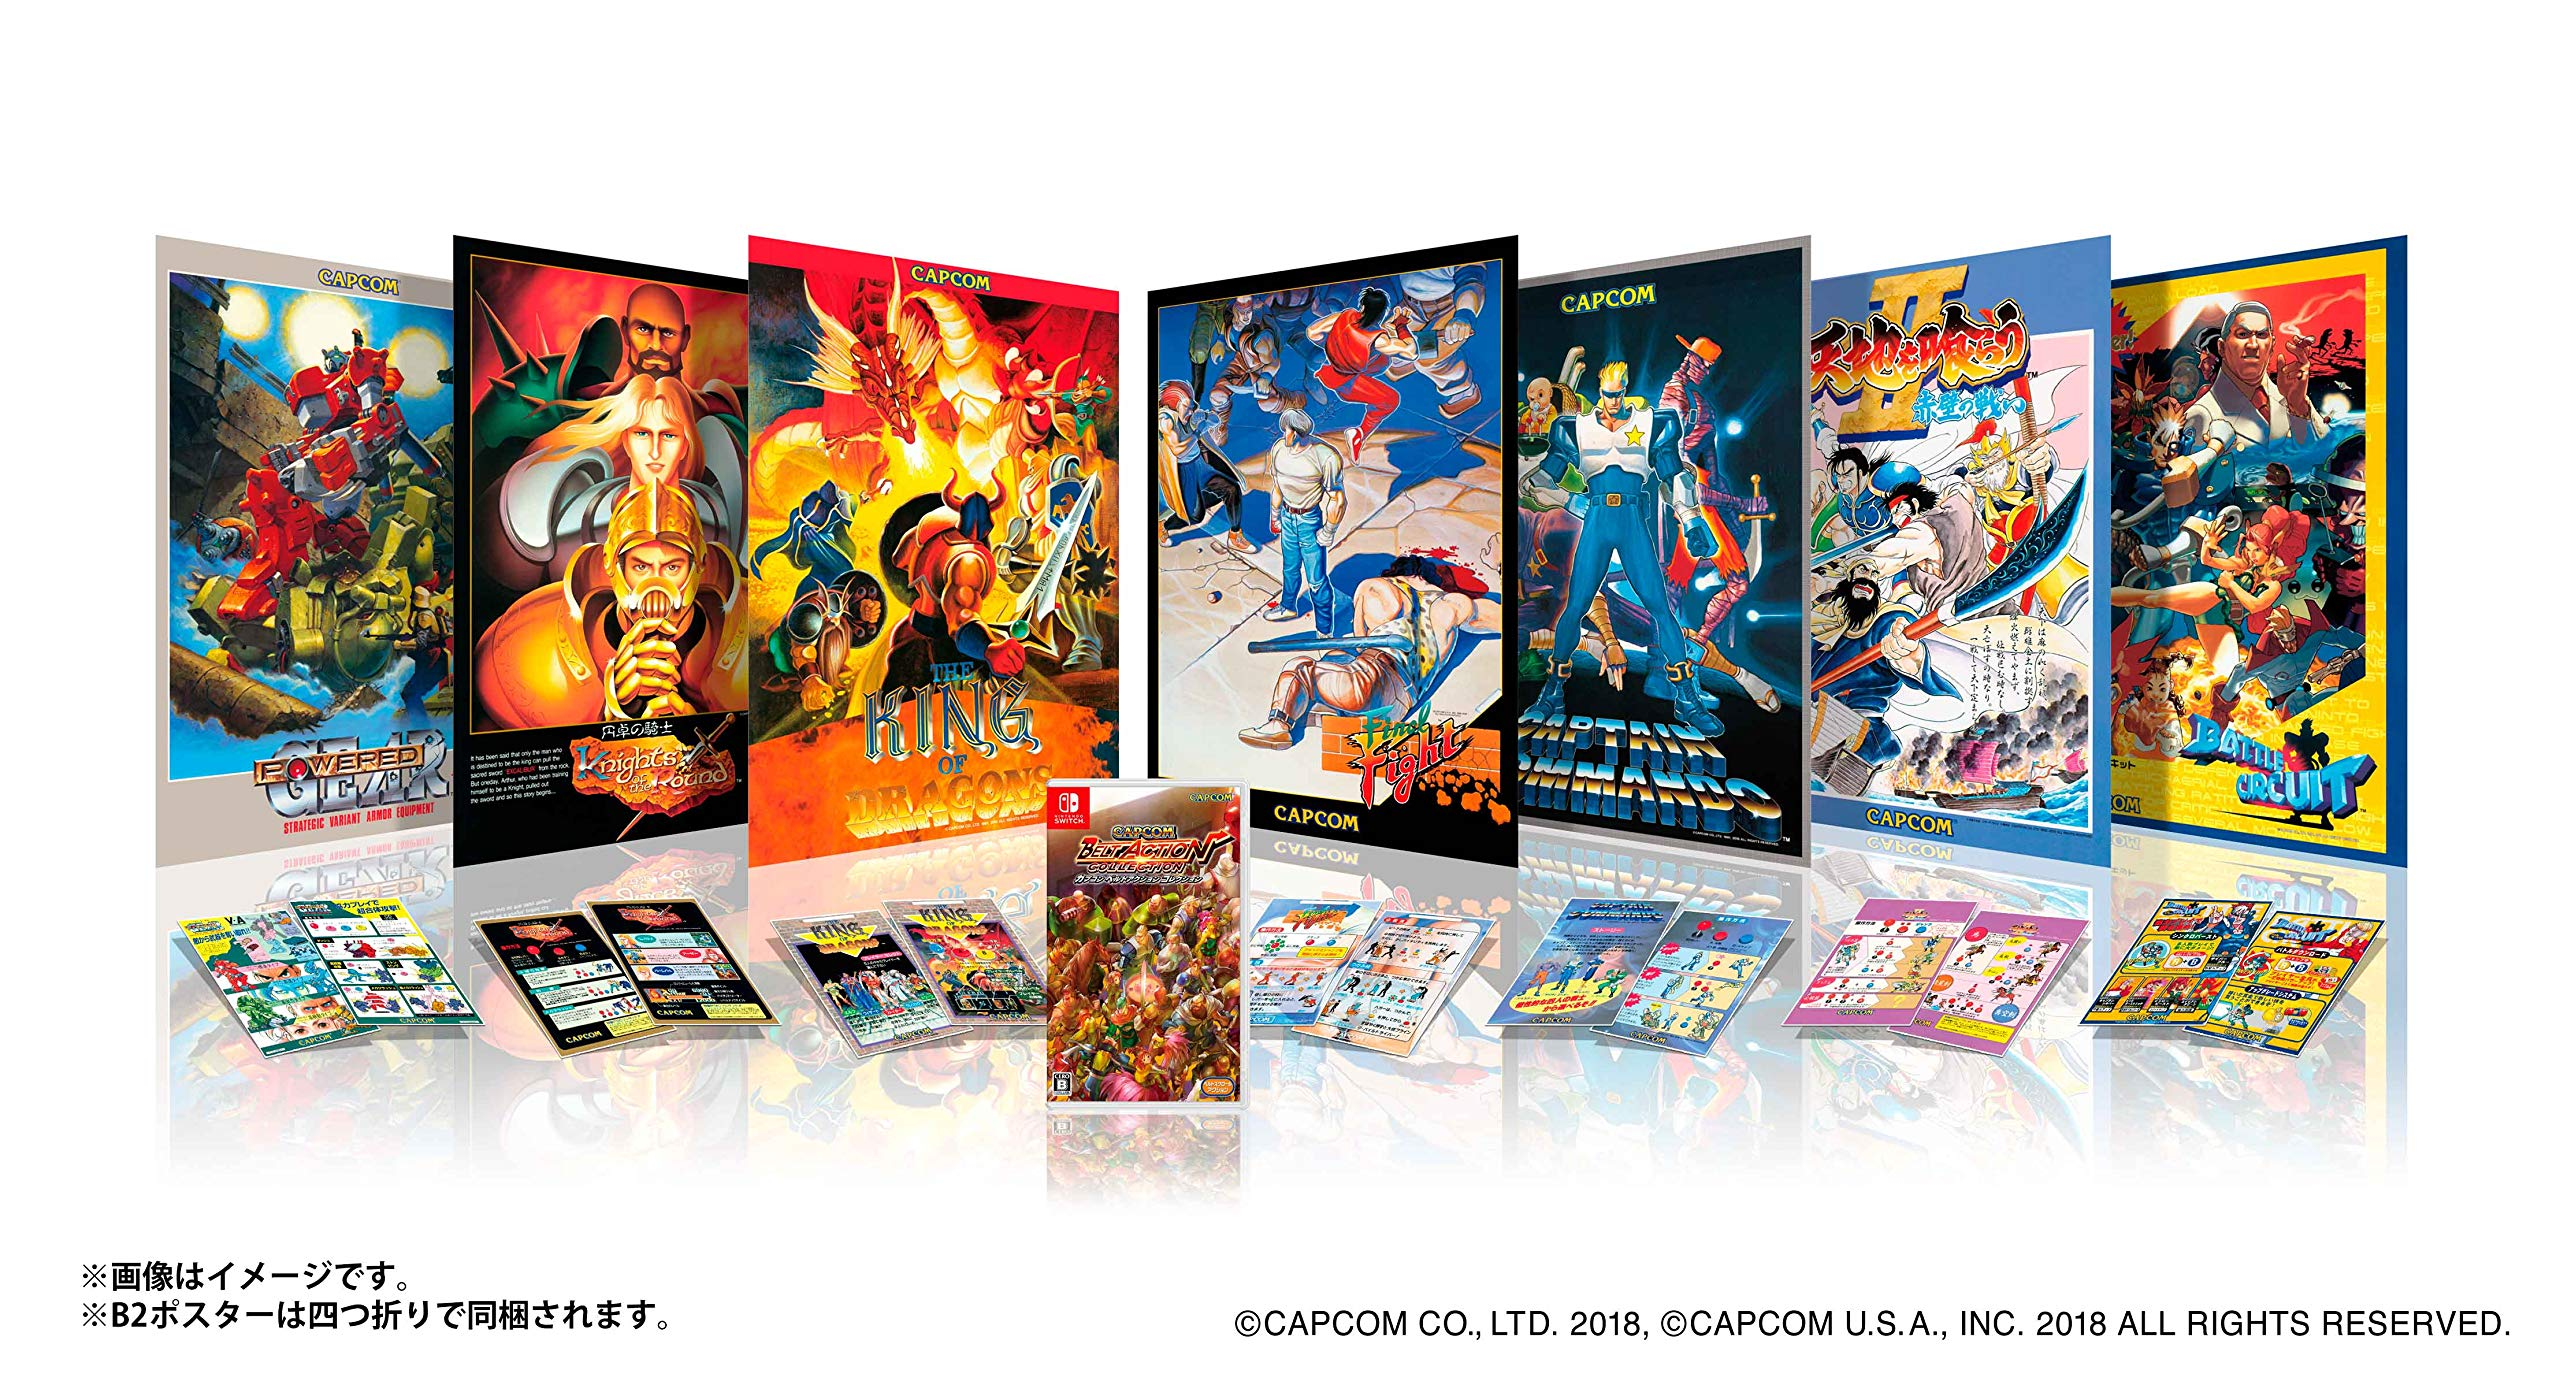 Capcom Belt Action Collection Collectors Box Collector NINTENDO SWITCH REGION FREE JAPANESE VERSION [video game]: Amazon.es: Videojuegos